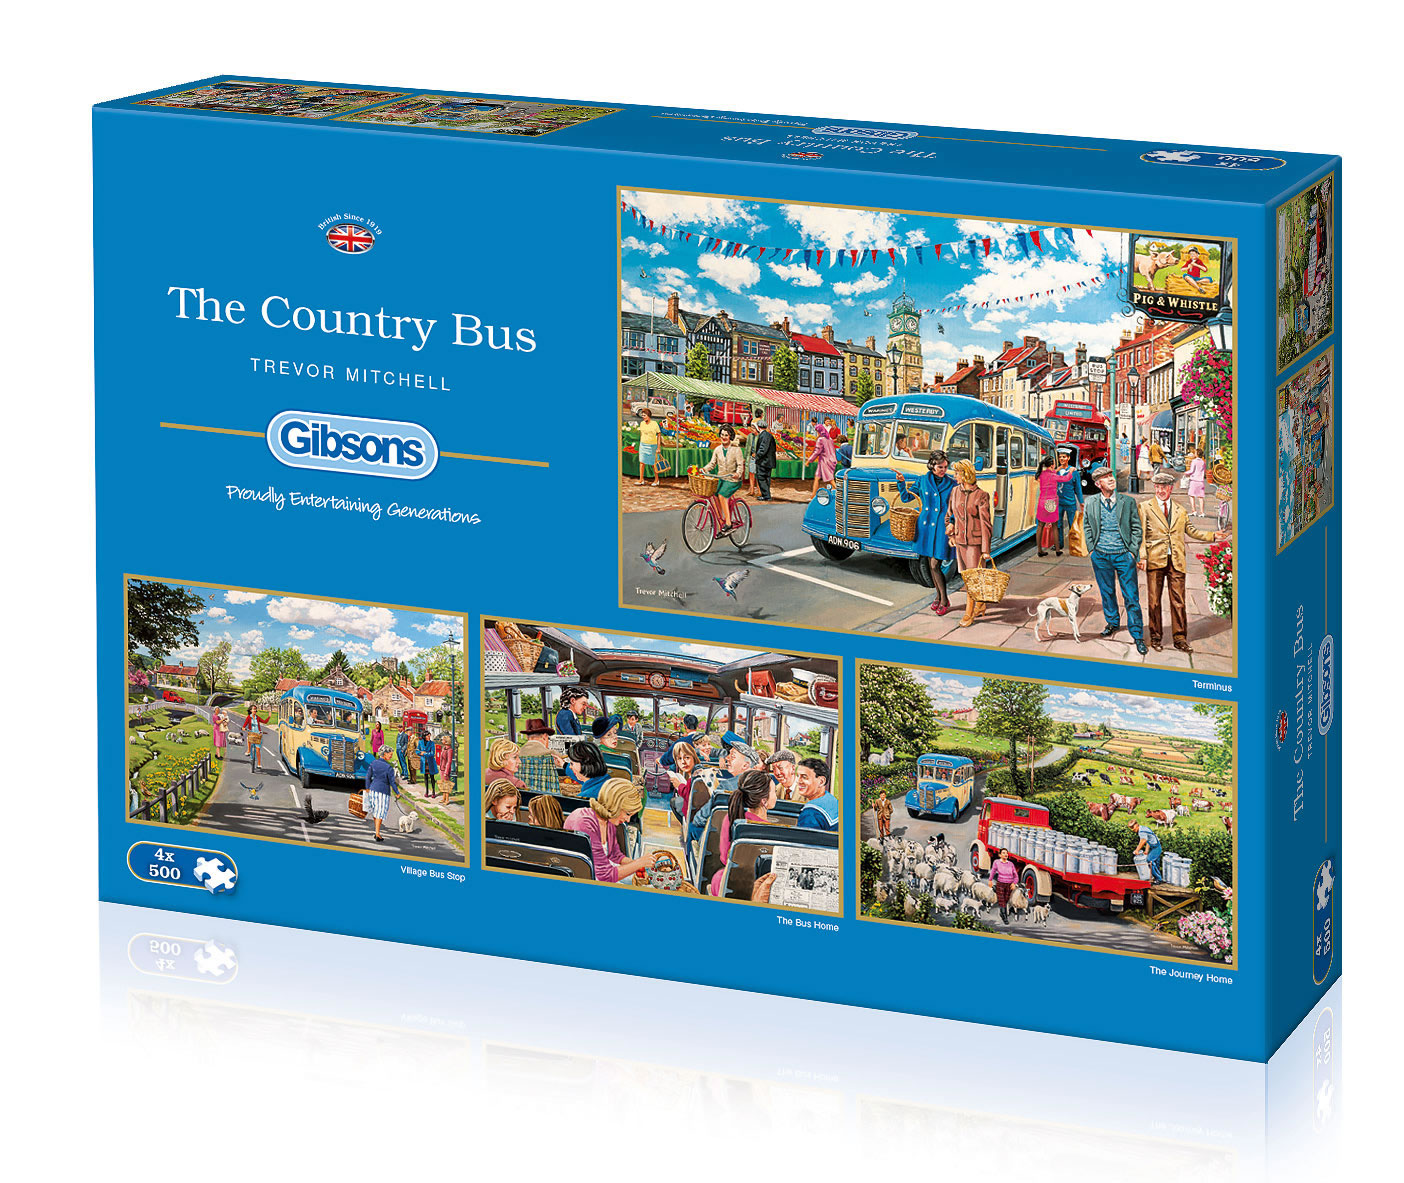 The Country Bus by Trevor Mitchell 4 x 500 puzzle box set